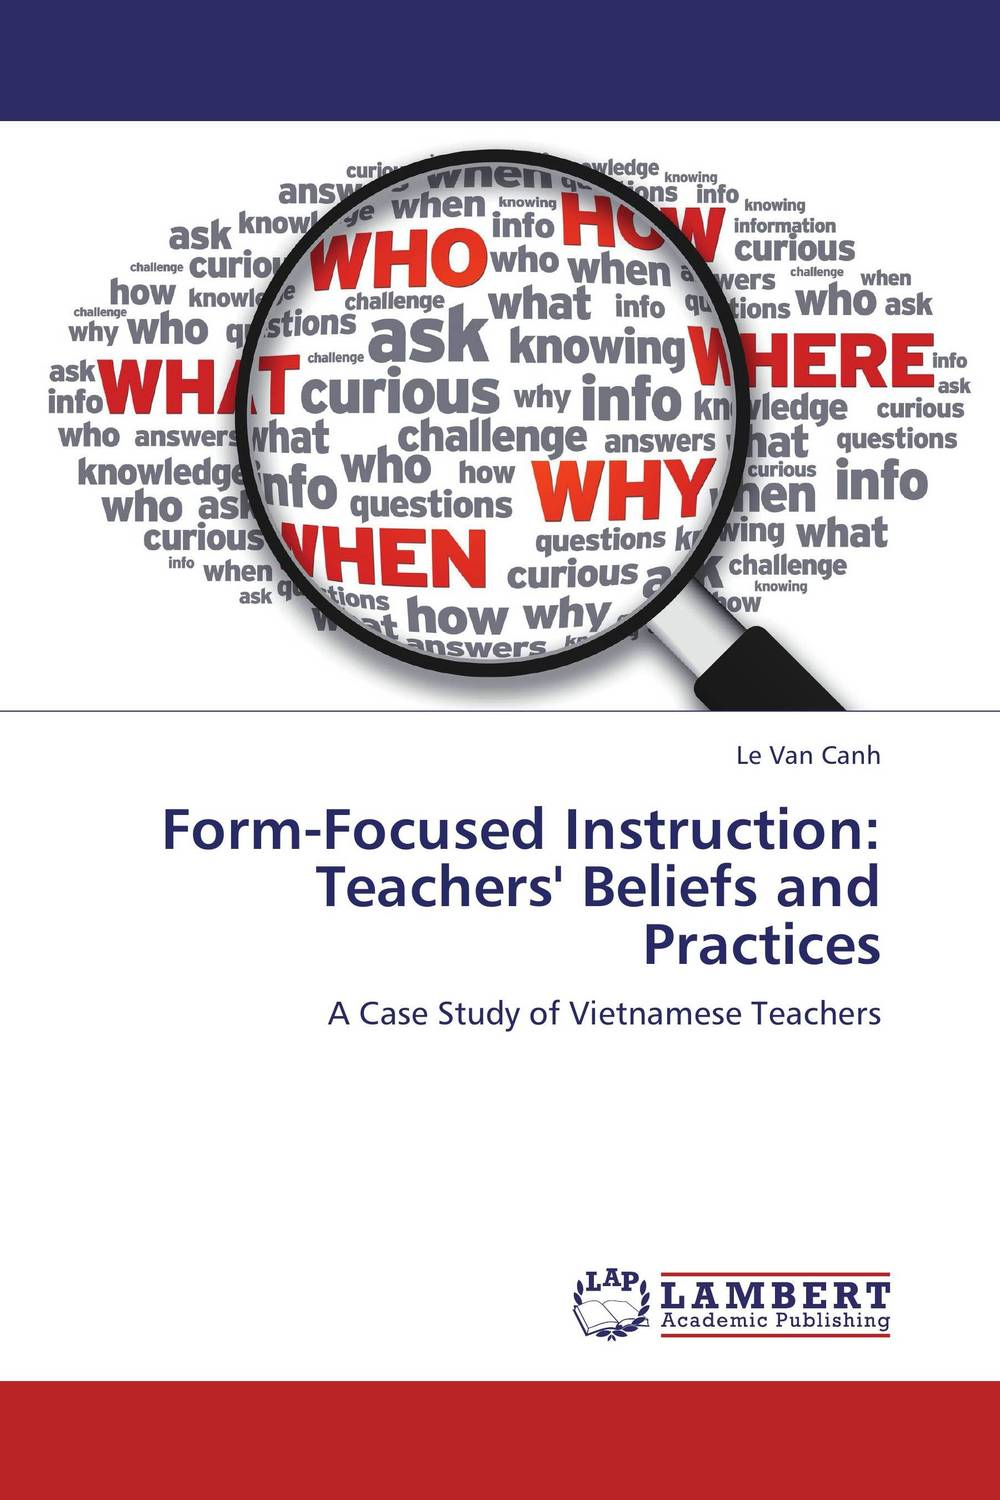 Form-Focused Instruction: Teachers' Beliefs and Practices